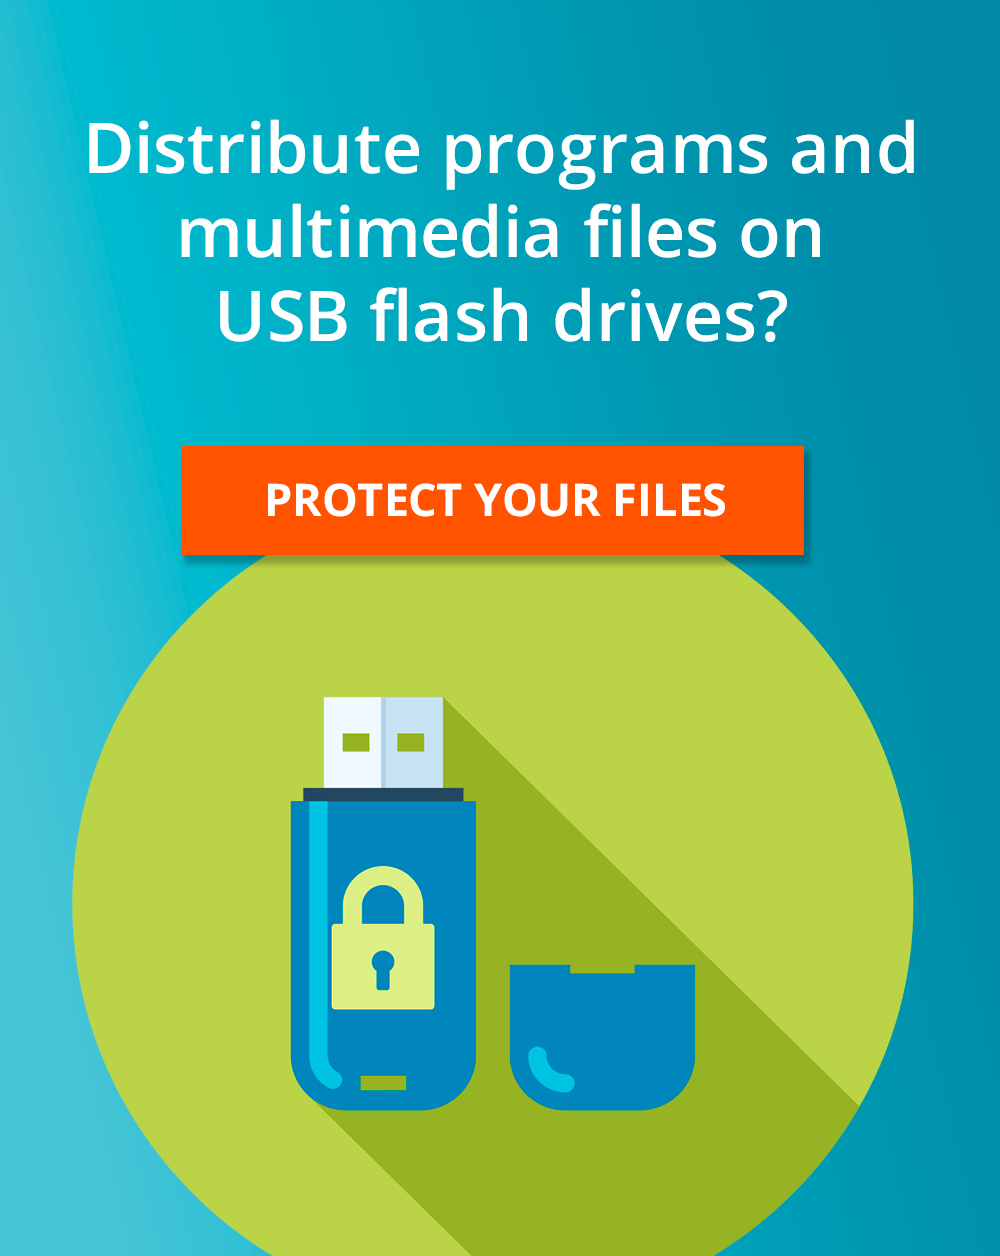 Data protection on USB